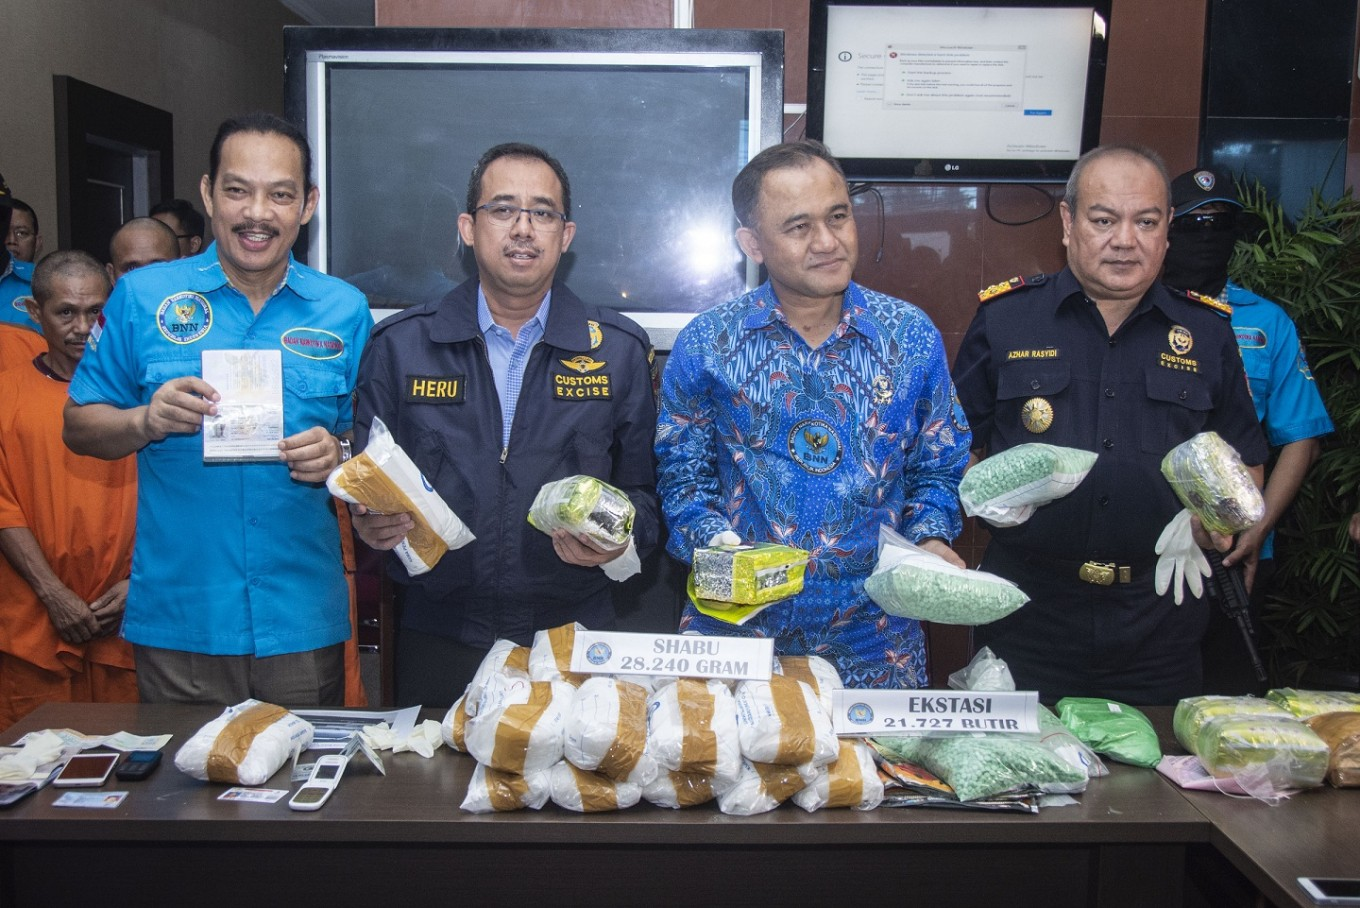 Drugs smuggling through Indonesia-Malaysia border in Kalimantan thwarted